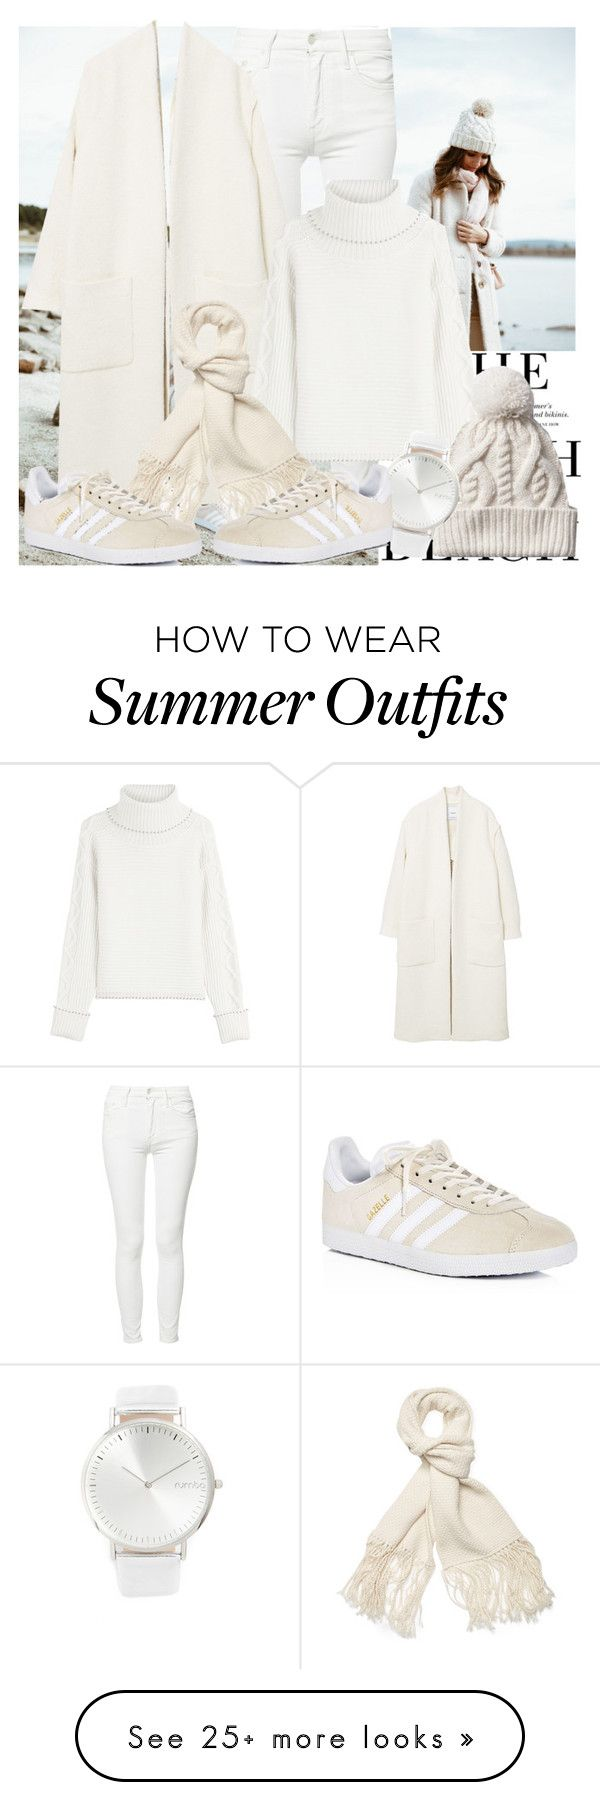 """Pastel"" by alexxandra on Polyvore featuring Mother, MANGO, H&M, K..."